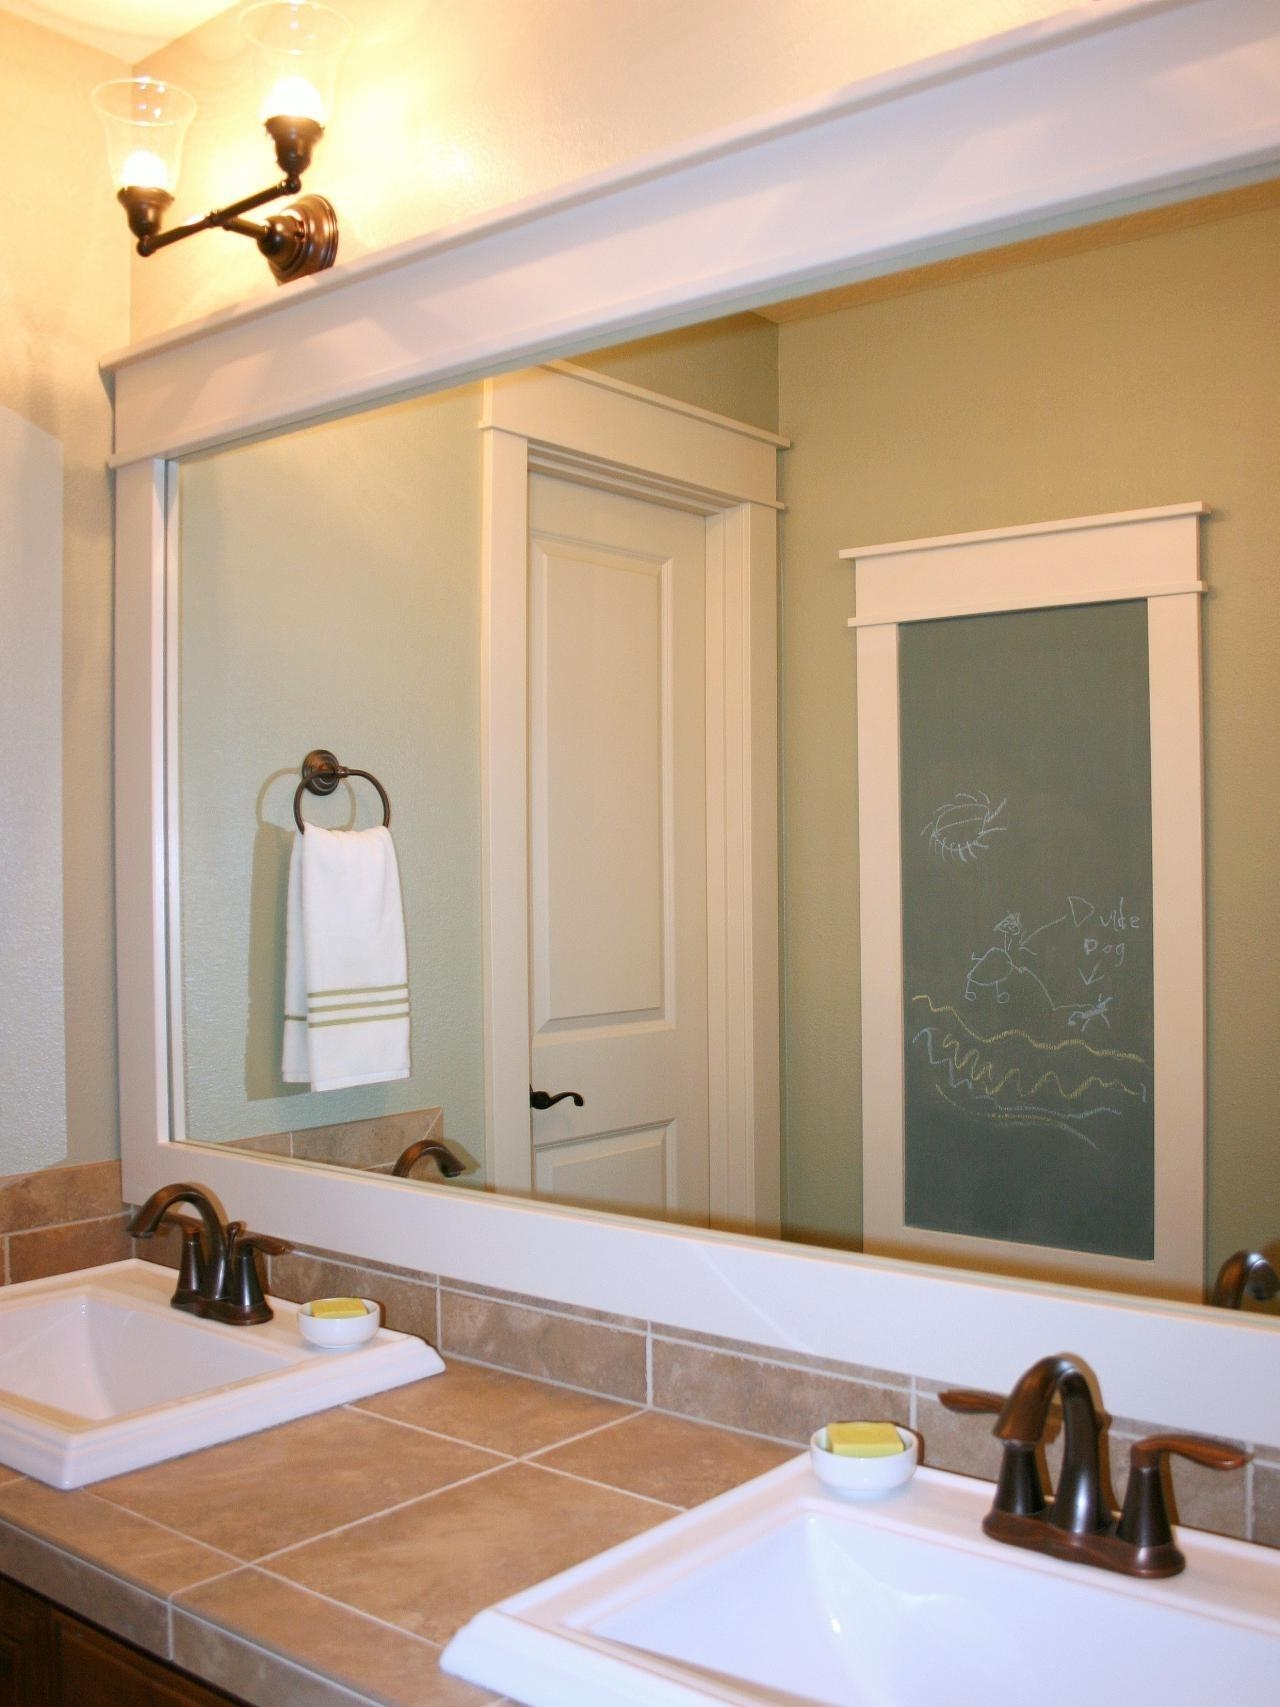 Bathroom: Elegant Bathroom Decor With Large Framed Bathroom Intended For Decorative Mirrors For Bathroom Vanity (Image 11 of 20)